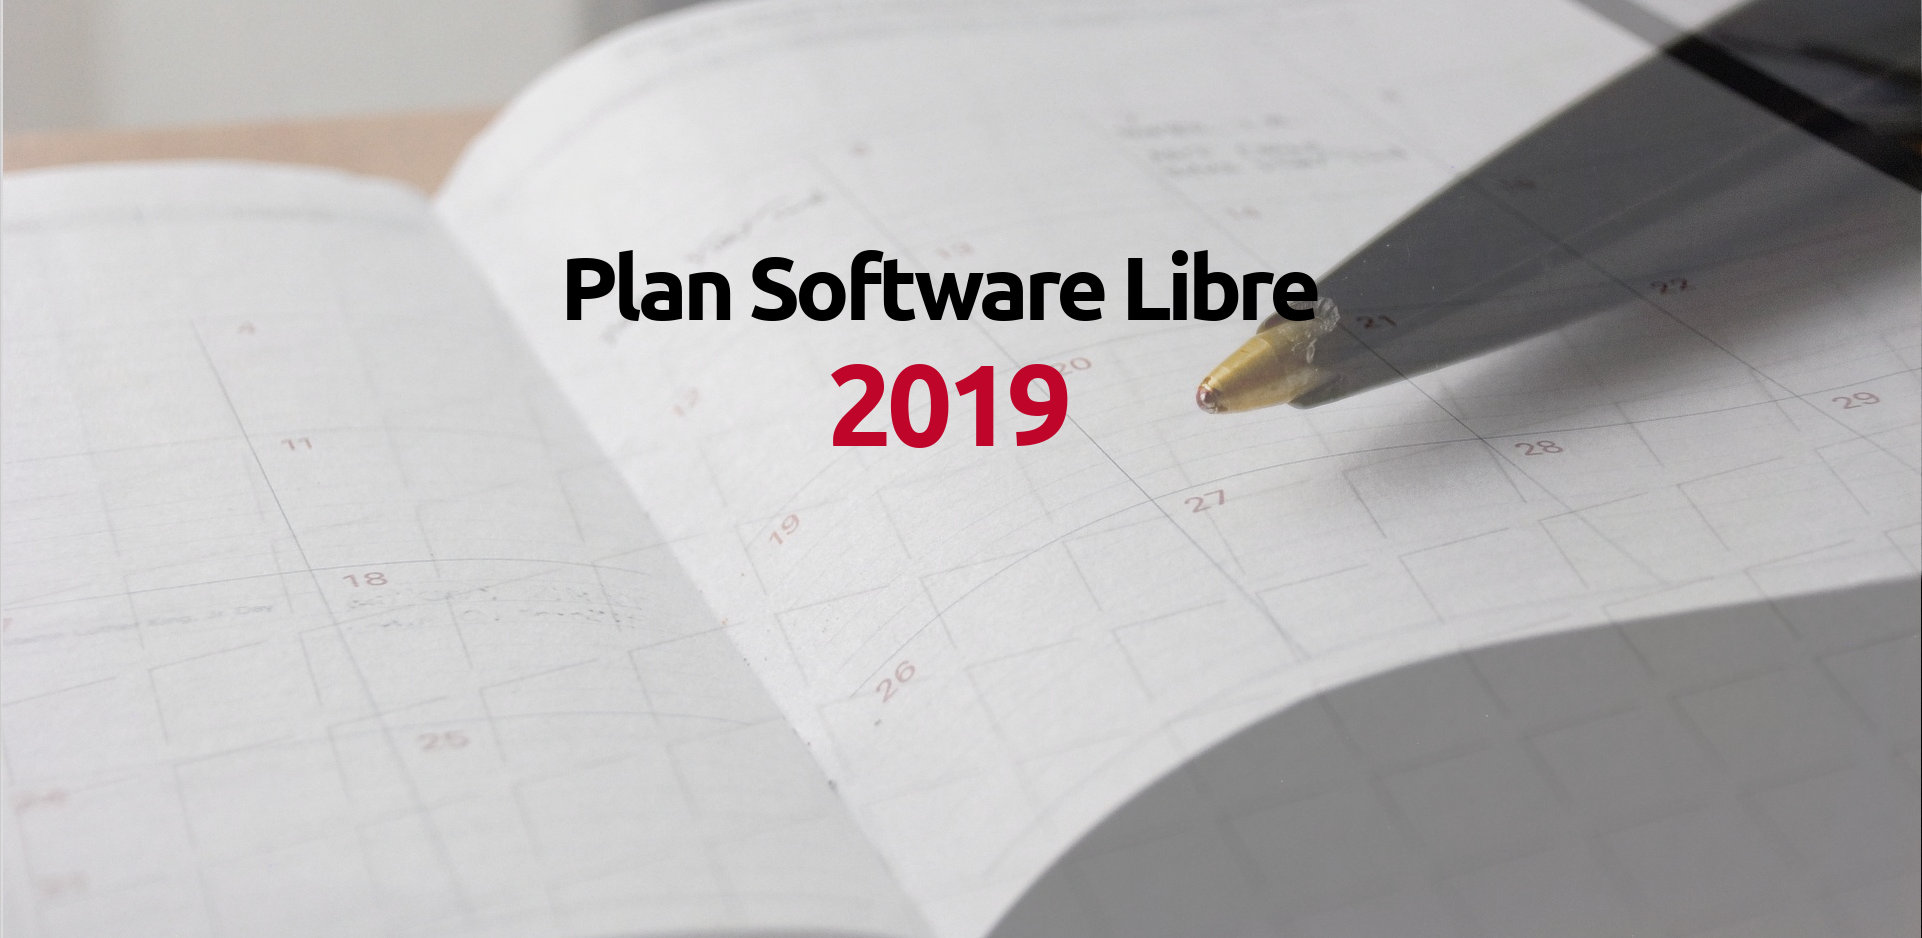 Plan de Software Libre 2019